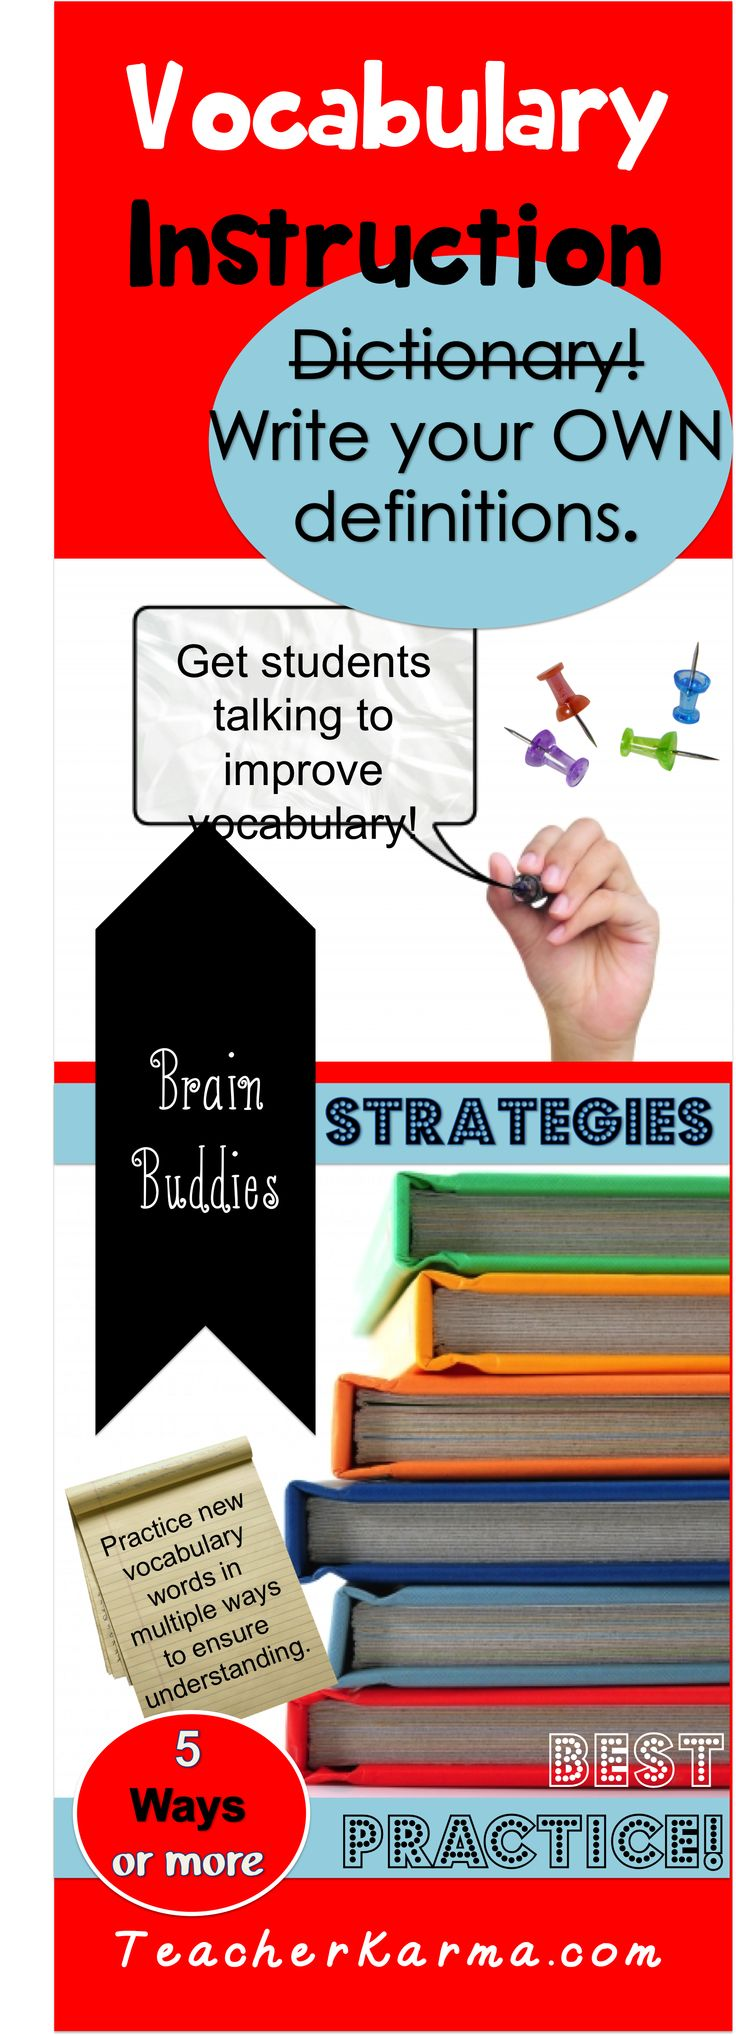 Vocabulary strategies for improving academic vocabulary.  Ways to partner talk and book buddies. #vocabulary #instruction